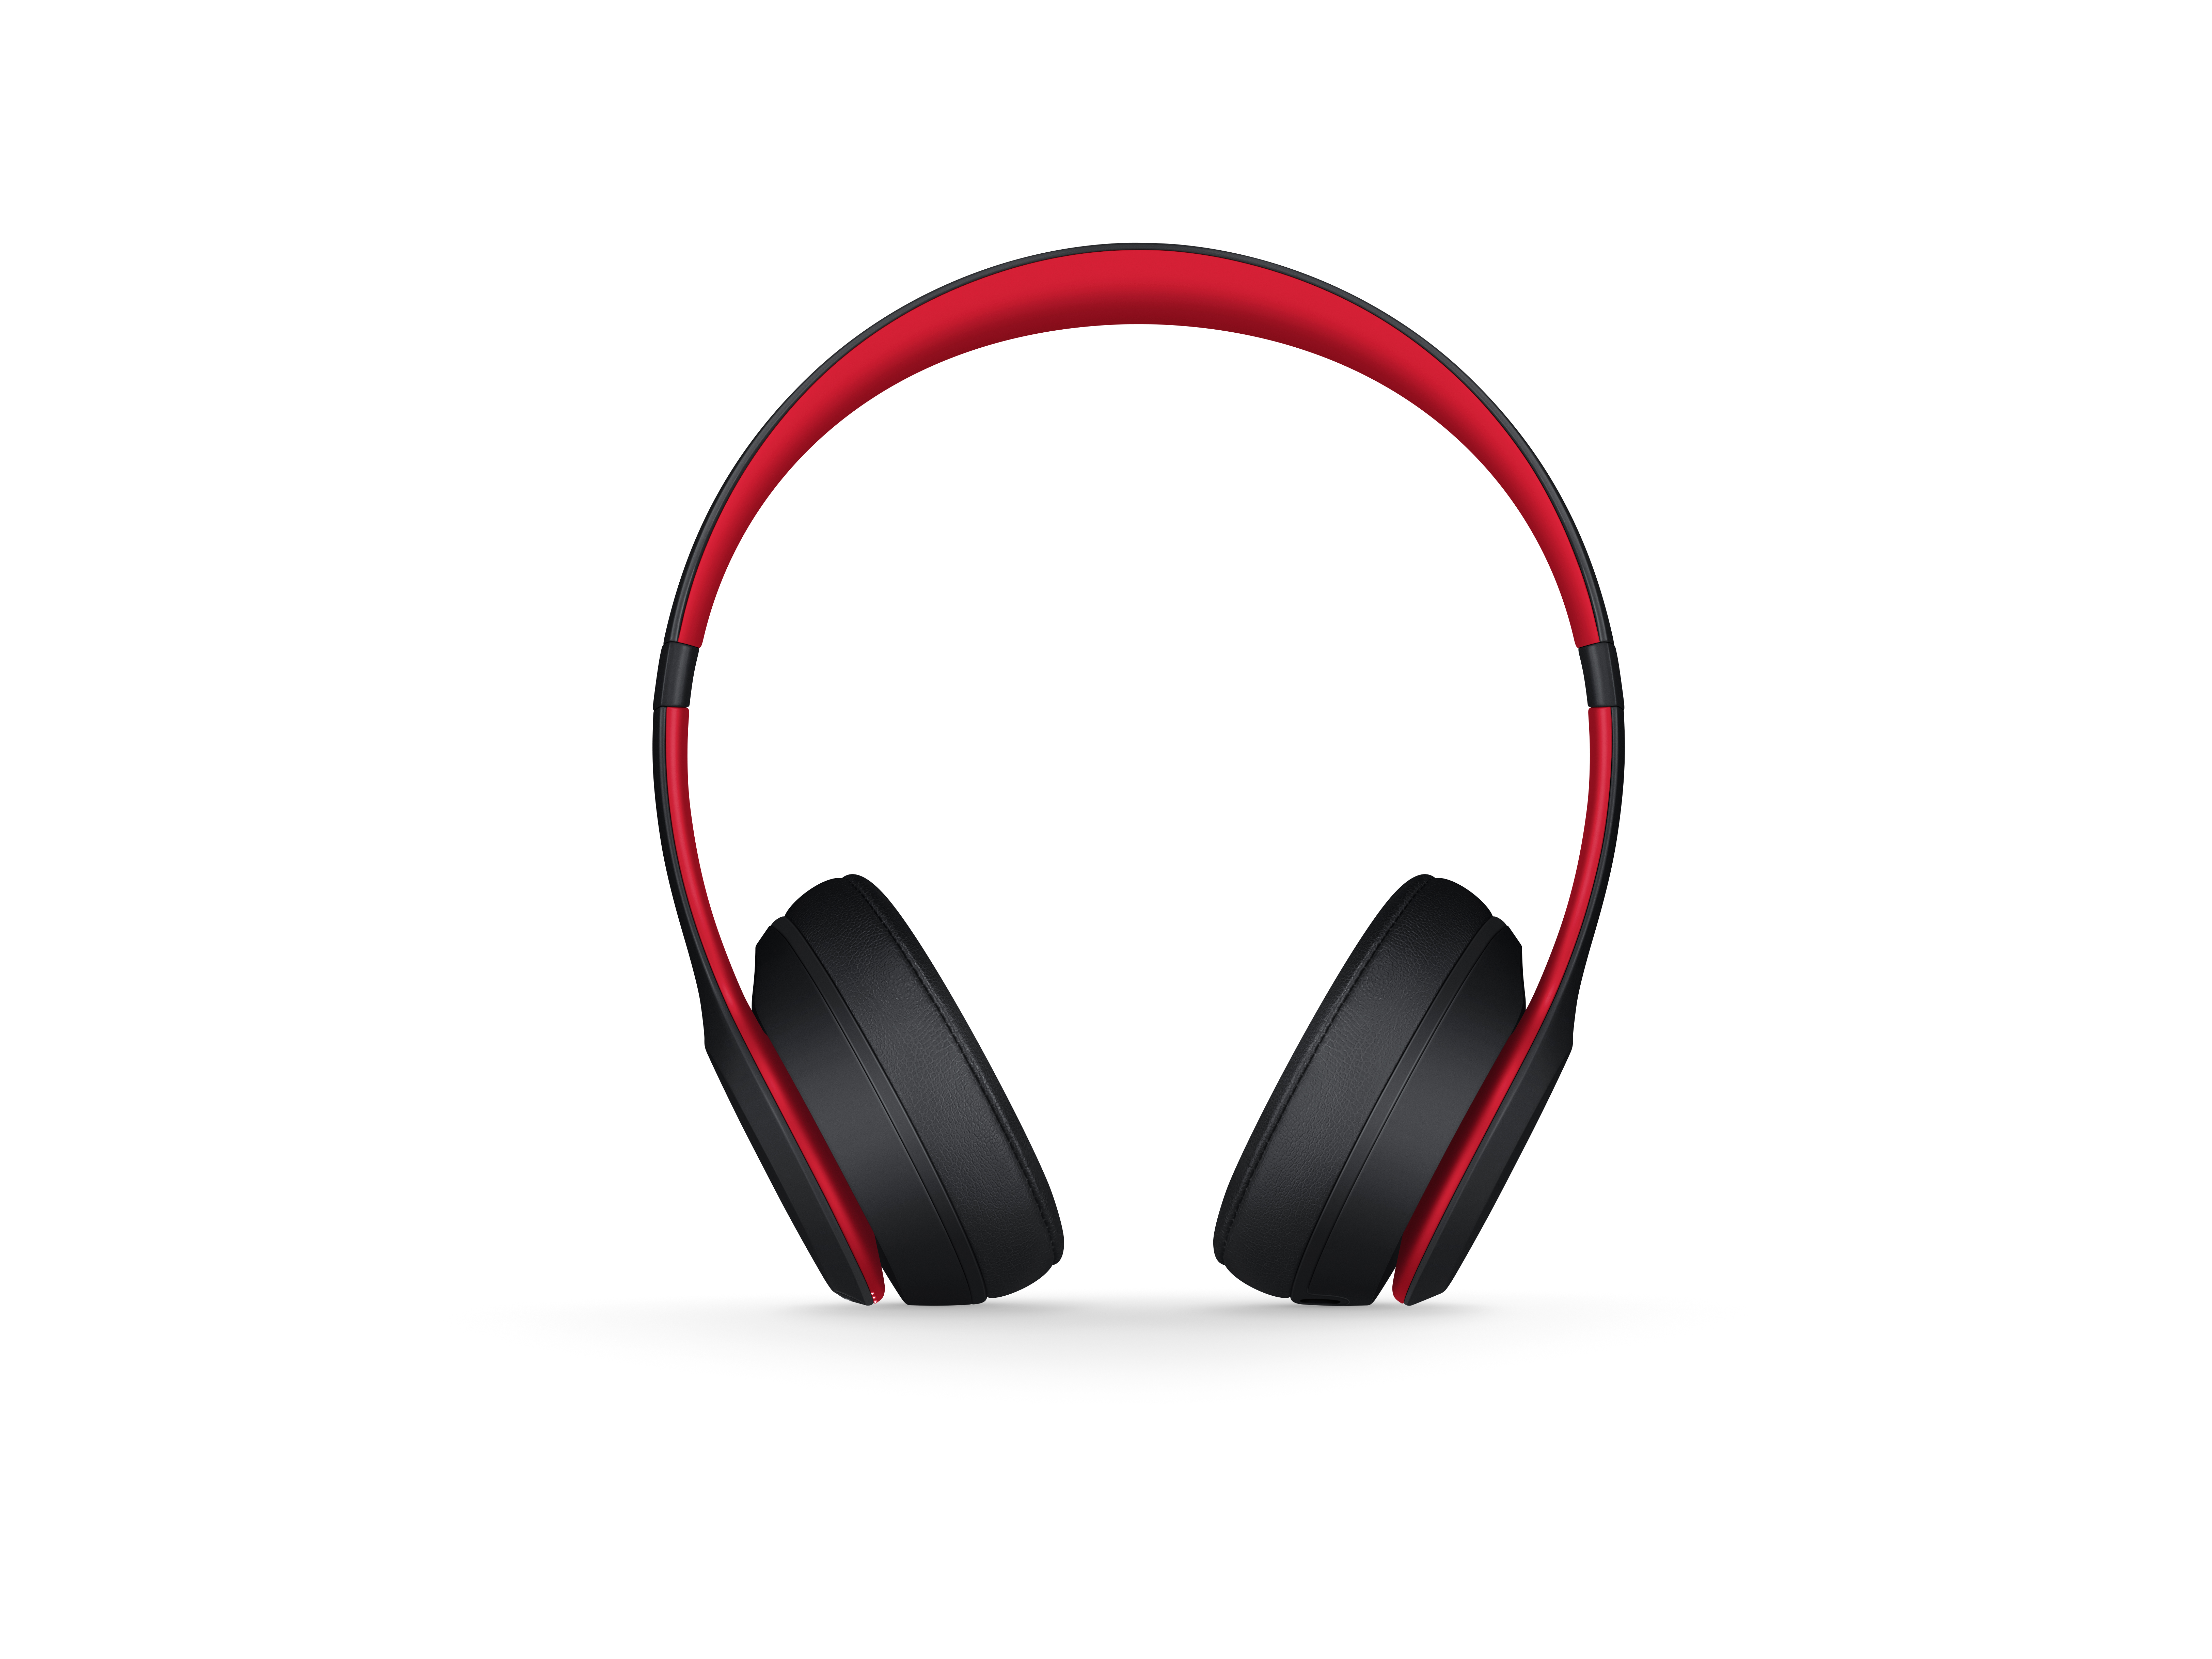 Beats Solo3 Wireless On-Ear Headphones The Beats Decade Collection Defiant Black-Red by Beats by Dr. Dre